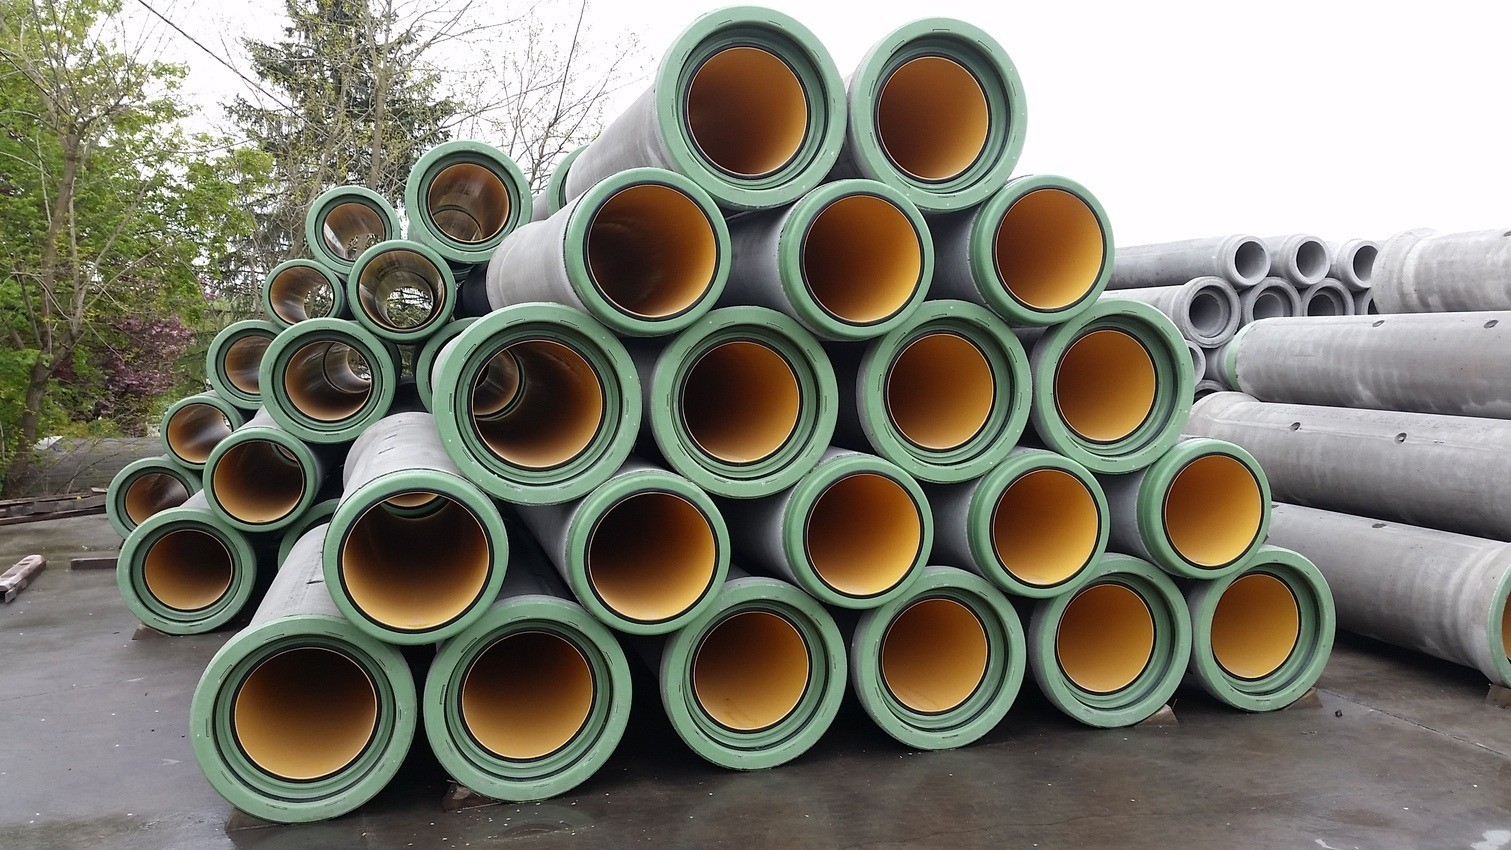 Ecoresist pipe liner system